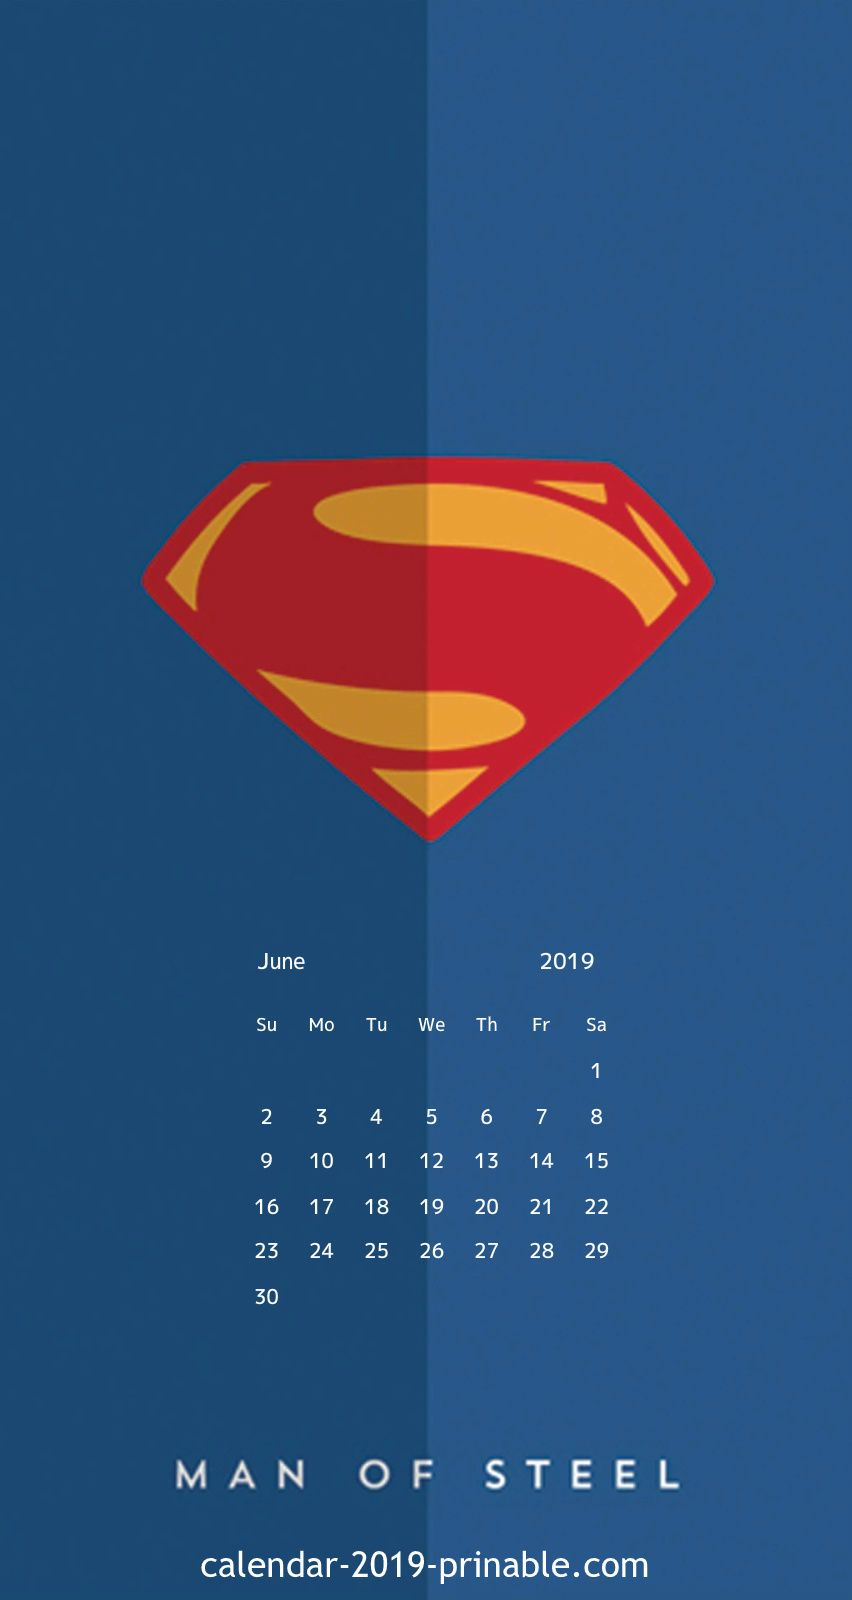 june 2019 iphone calendar wallpaper 2019 Calendars Calendar 852x1600